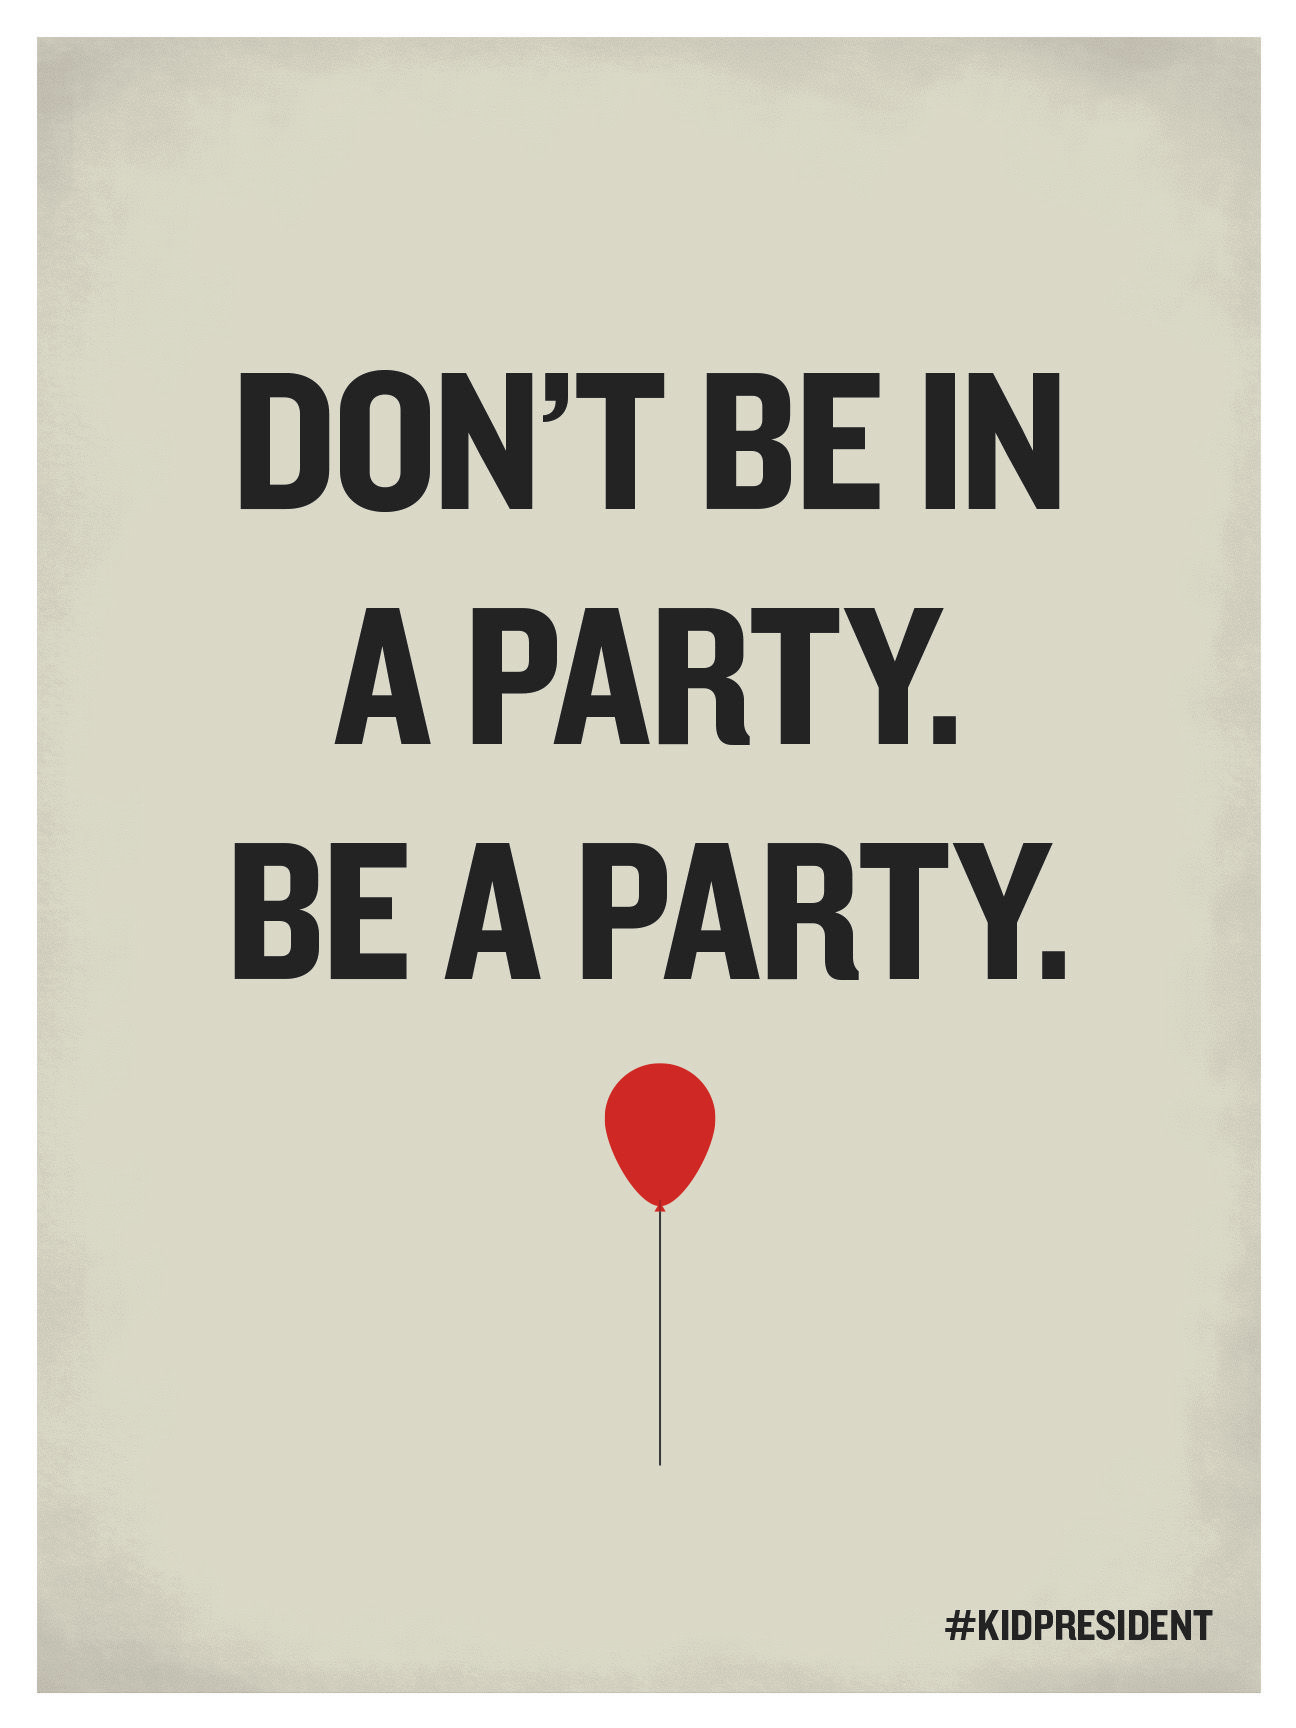 Funny Party Quotes Posters  Crystal Barlowjensenquotes Funny Party  Quotes